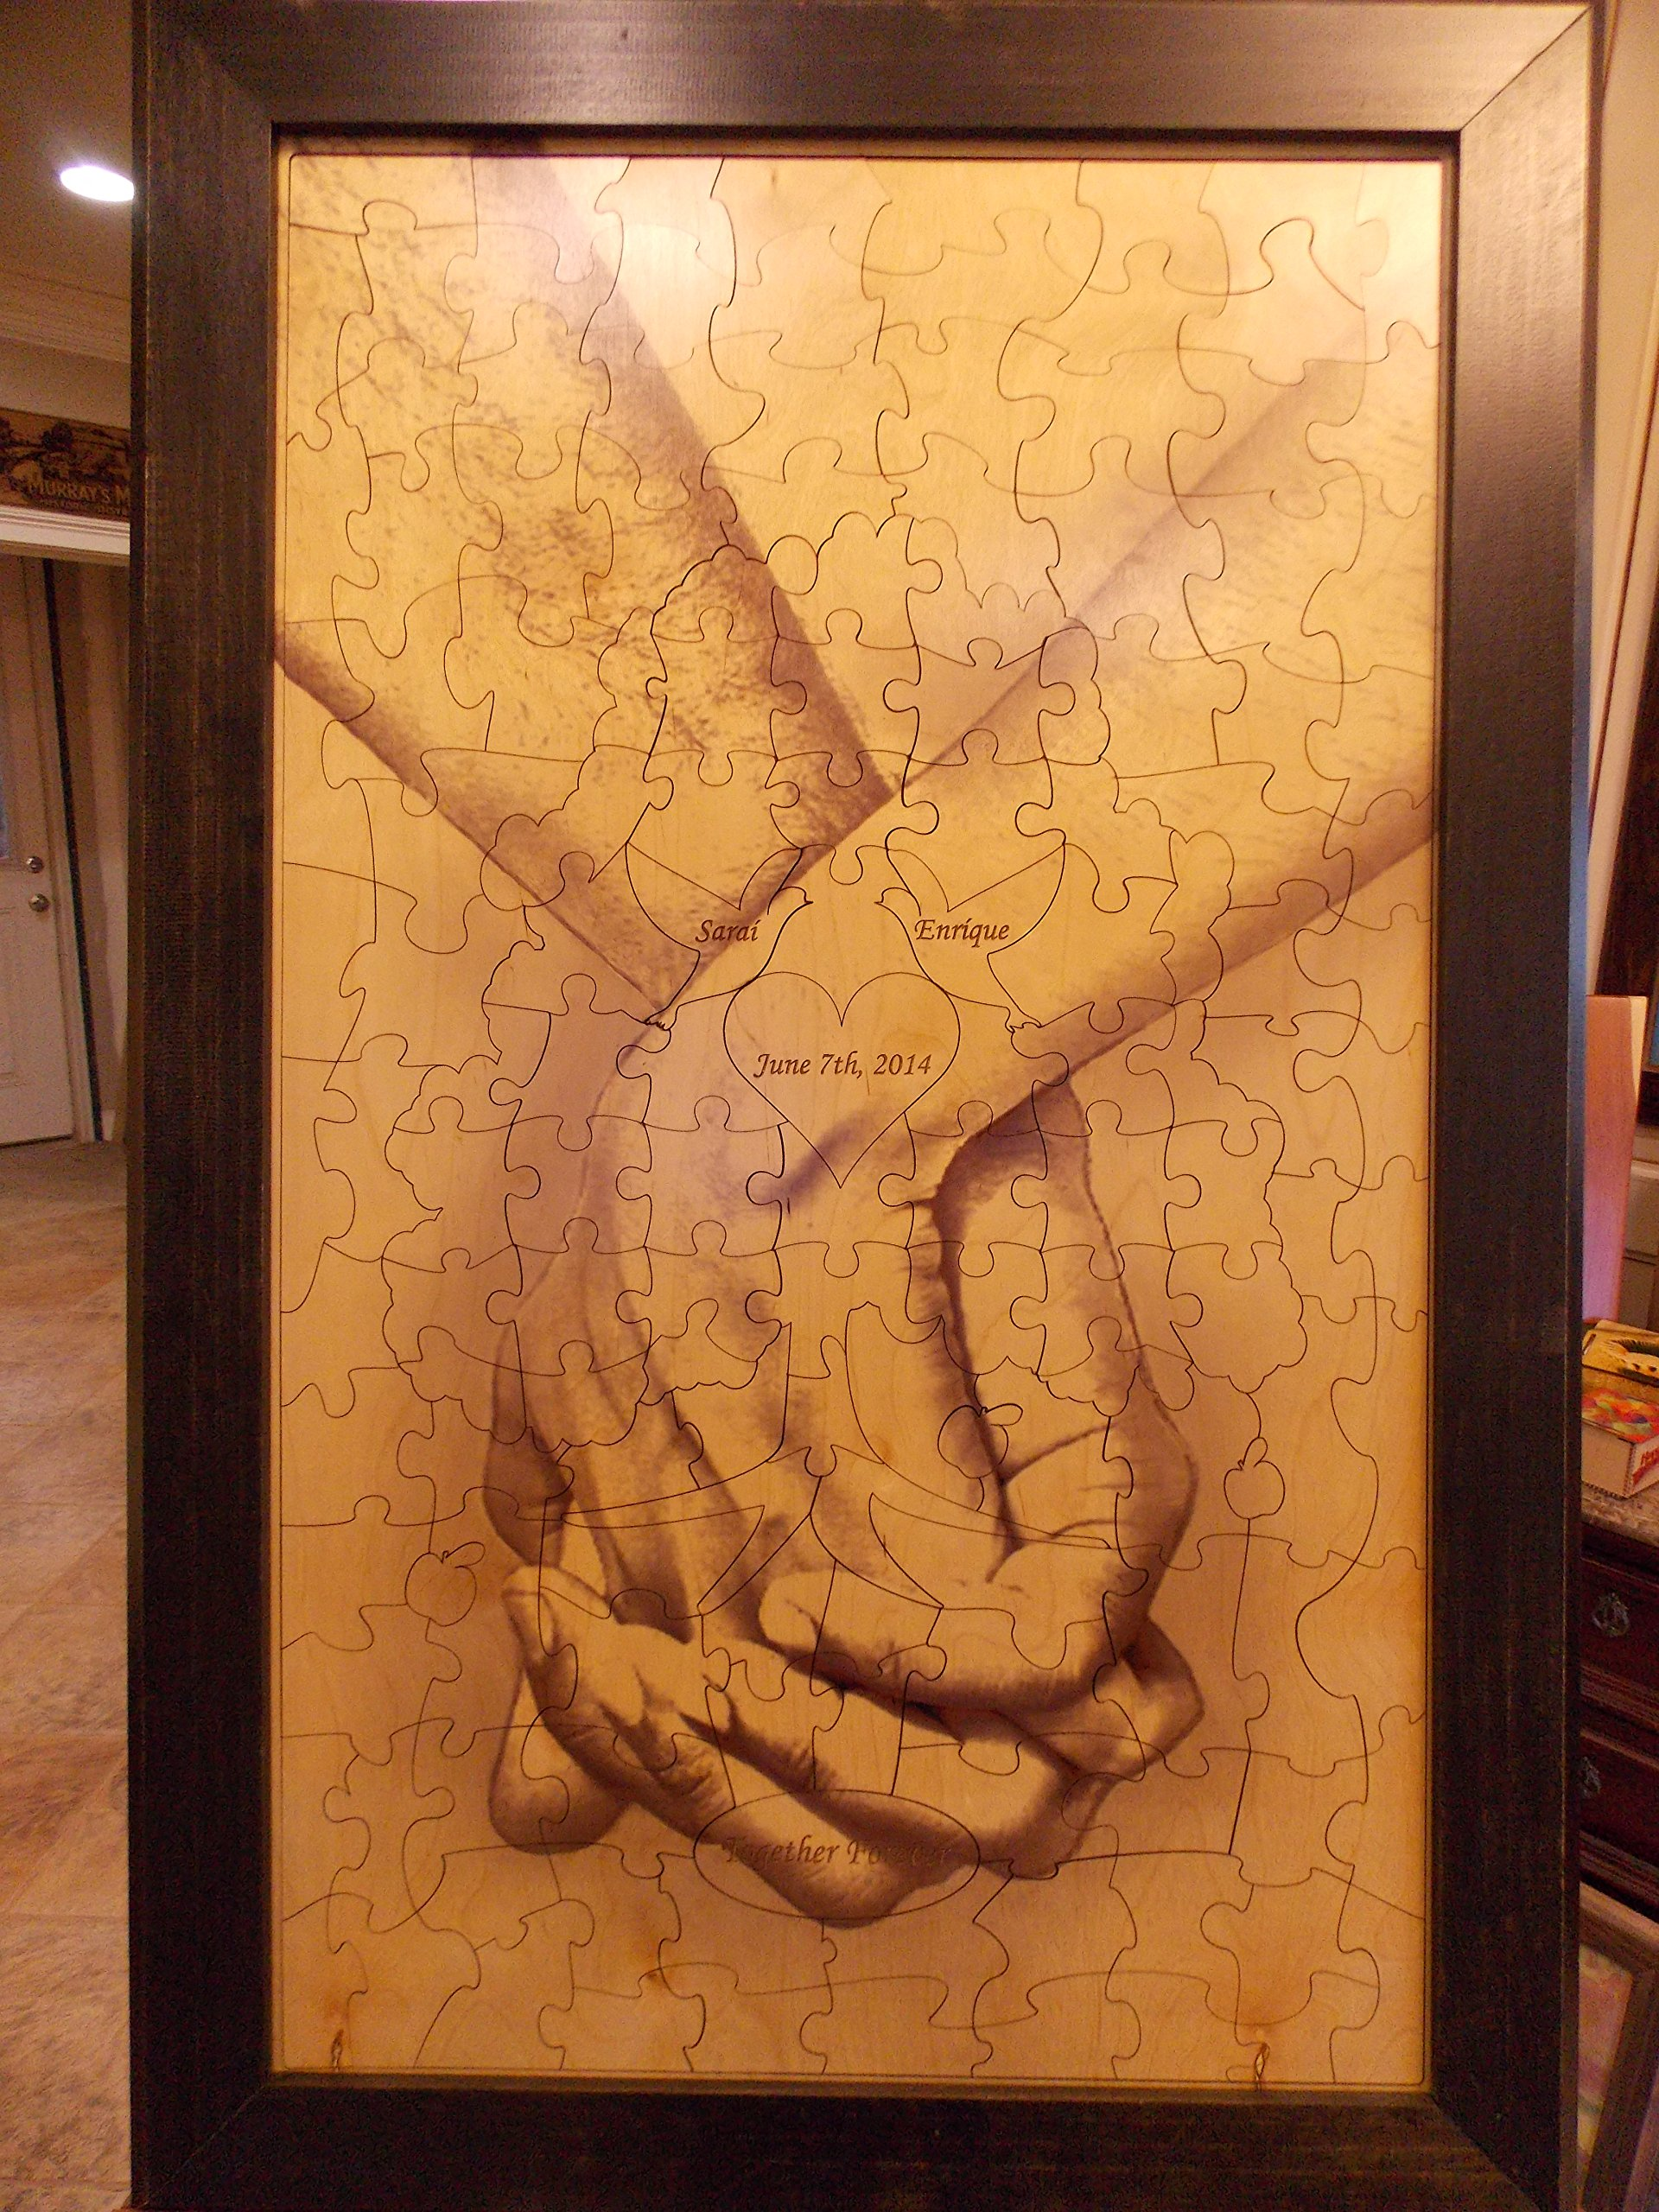 Wedding Guest Book Alternative Wood Puzzle ''Together Forever Tree Hand In Hand'' 24x38 Large 151 Piece by Together Forever Puzzle